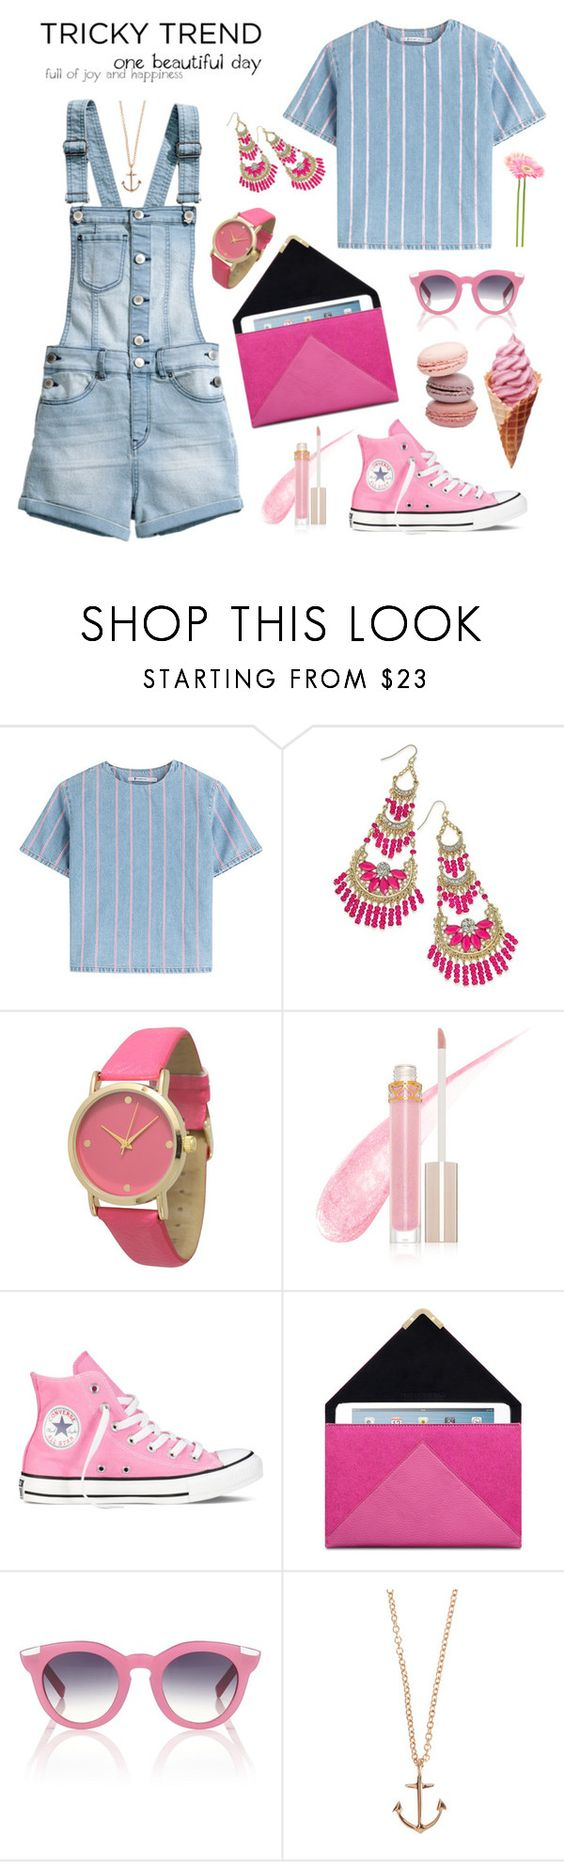 """Tricky Trend: Shortalls"" by jasminerb ❤ liked on Polyvore featuring T By Alexander Wang, Thalia Sodi, Olivia Pratt, Stila, Converse, VIVETTA, Minor Obsessions, H&M, TrickyTrend and contest"